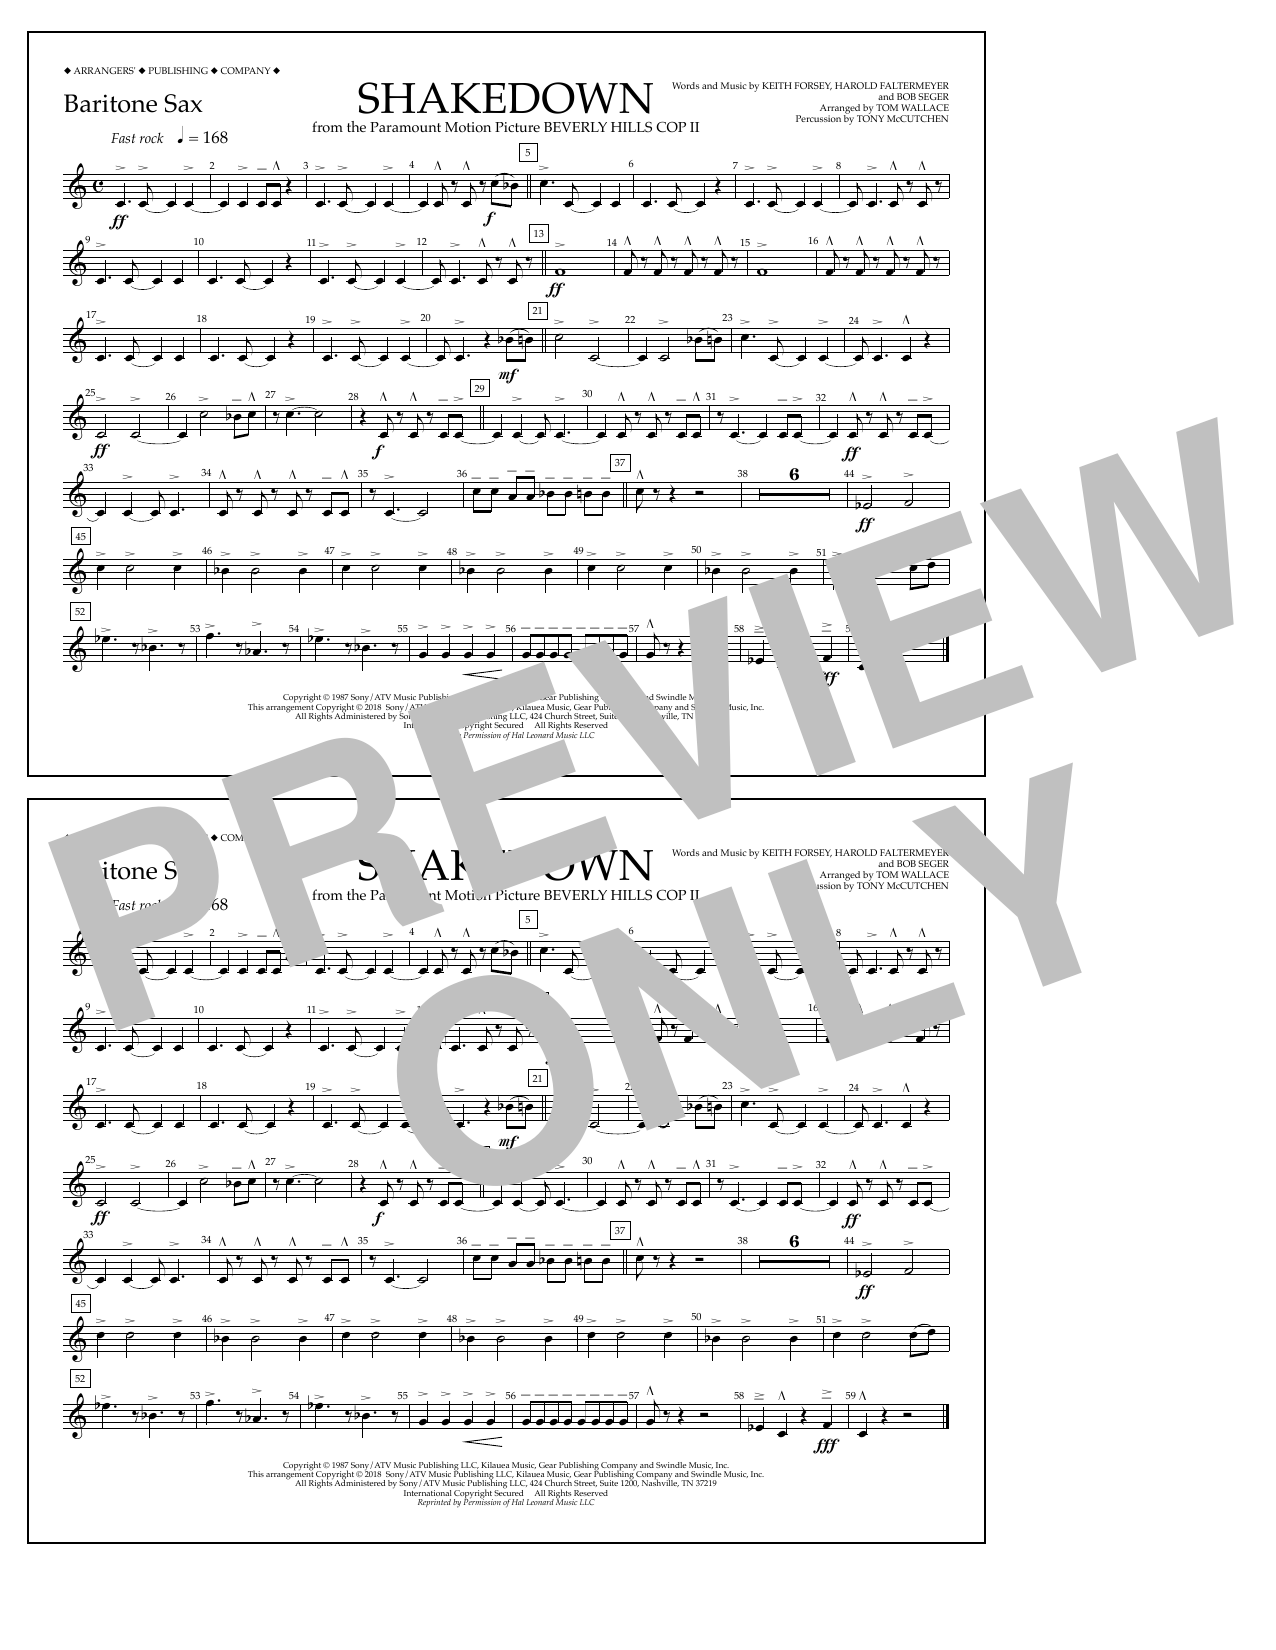 Tom Wallace Shakedown - Baritone Sax sheet music notes and chords. Download Printable PDF.